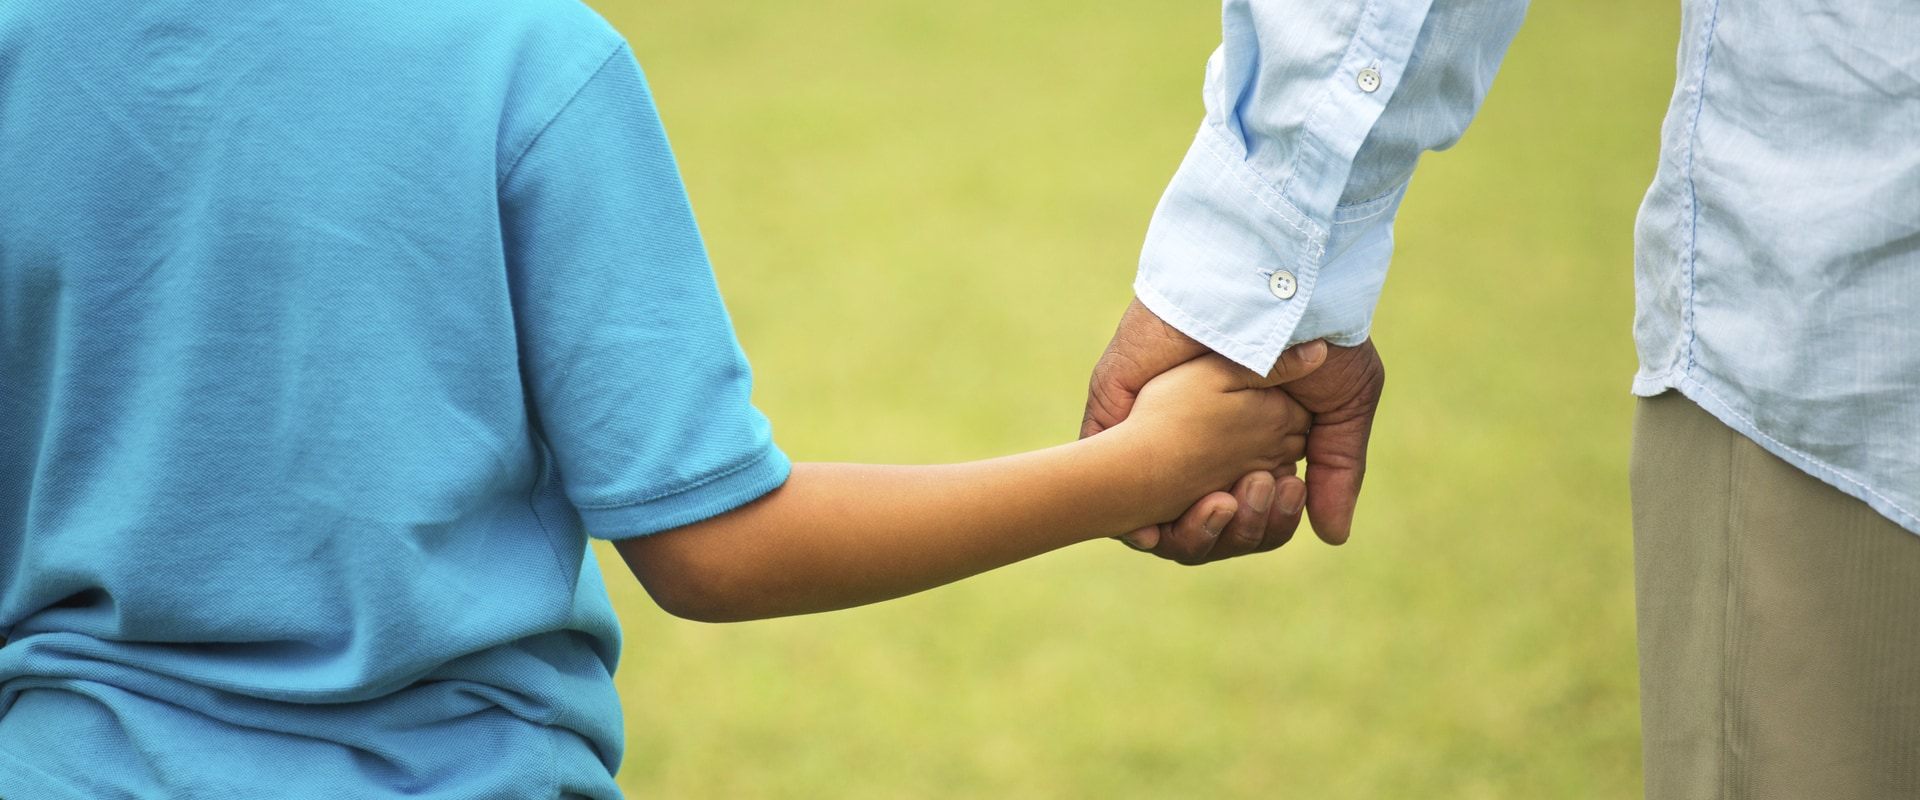 Image of child and adult holding hands.